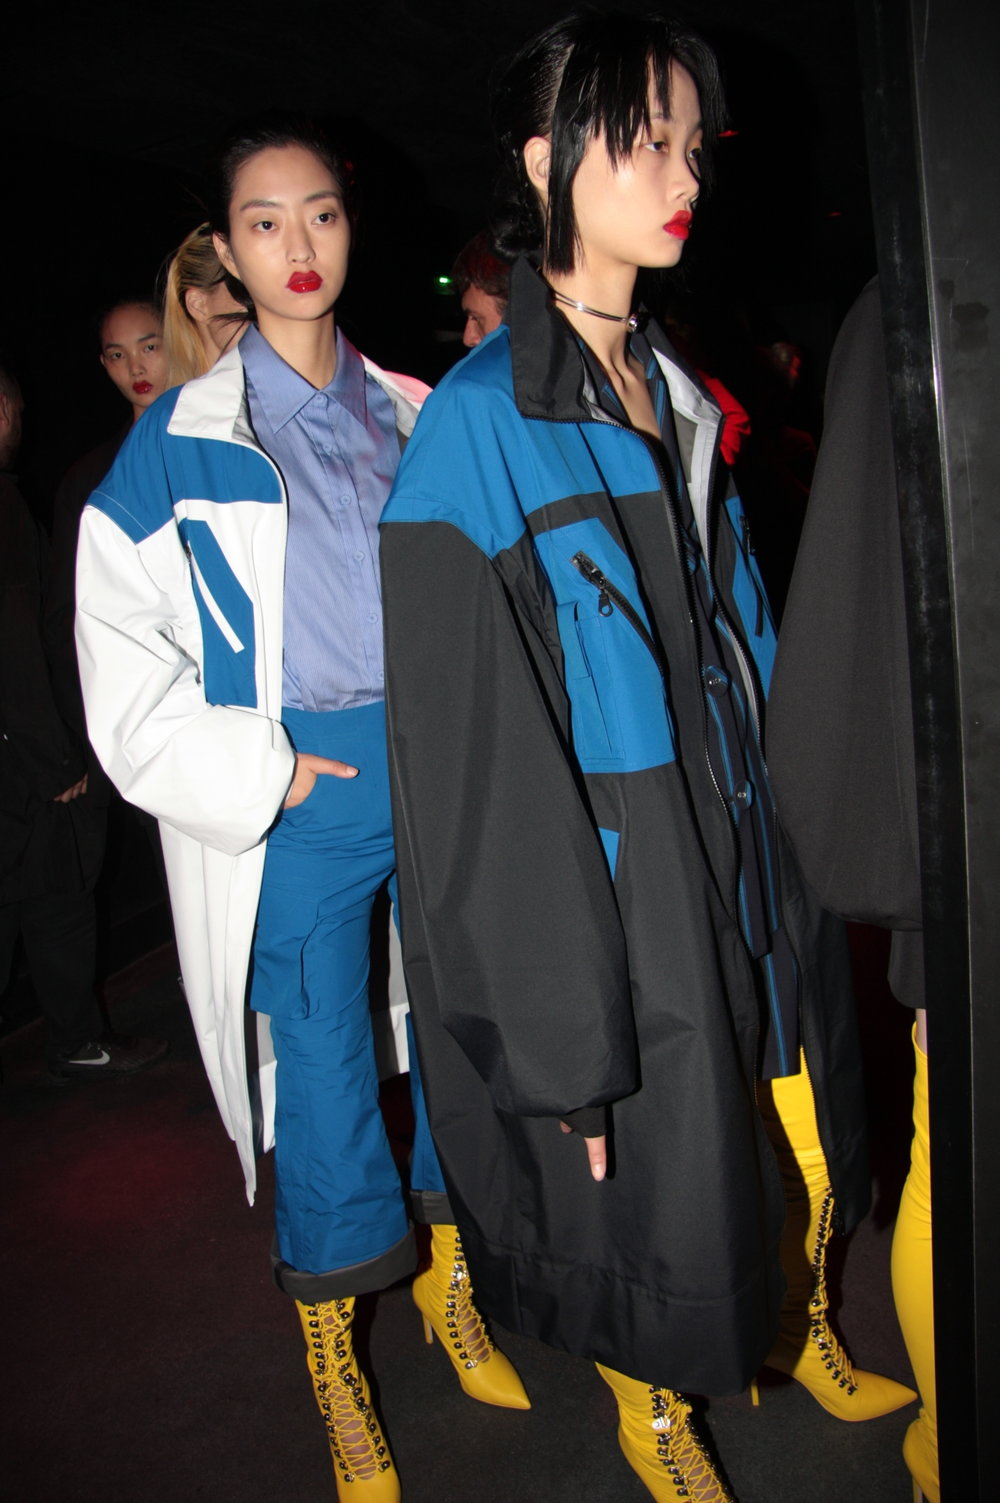 zupanov_mashaMA_BACKSTAGE_paris FW oct 201789.JPG